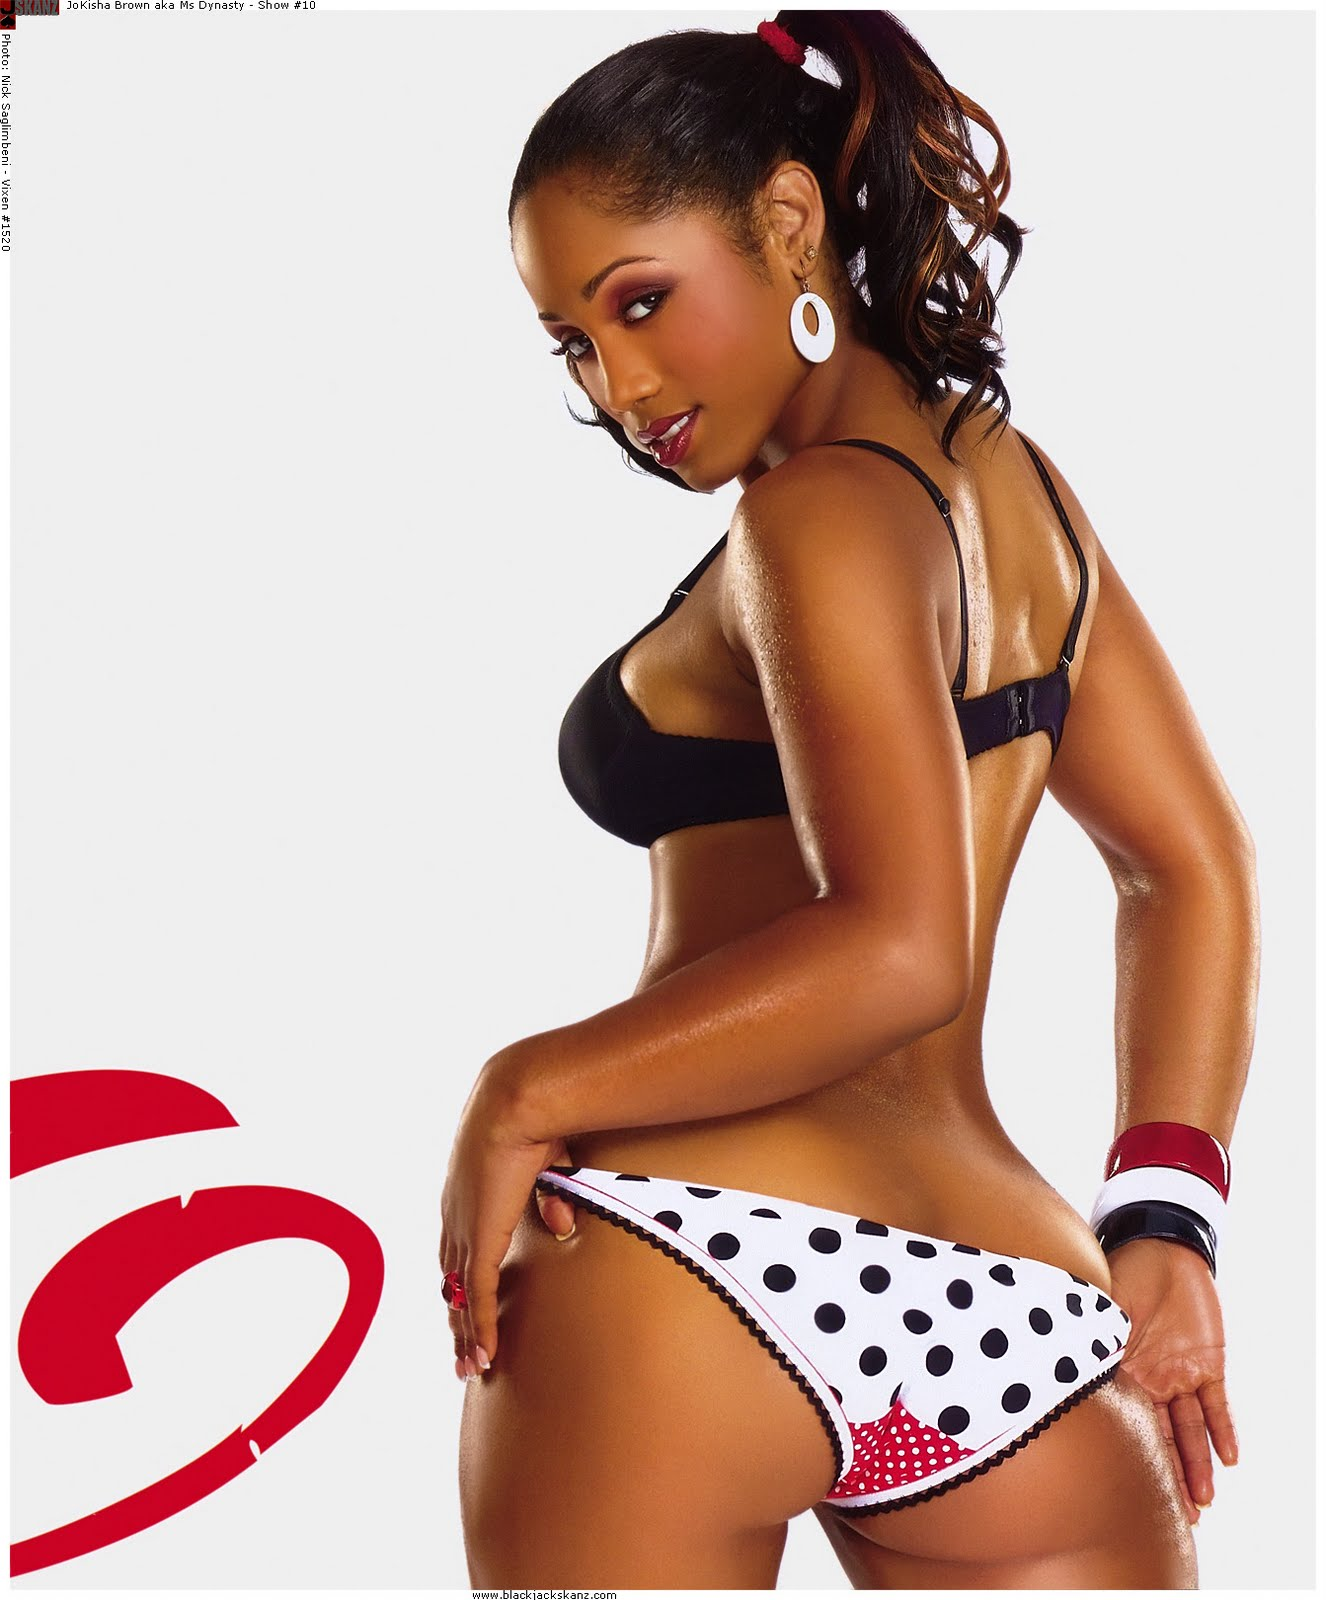 vixens1520-jokisha-brown-aka-ms-dynasty.jpg